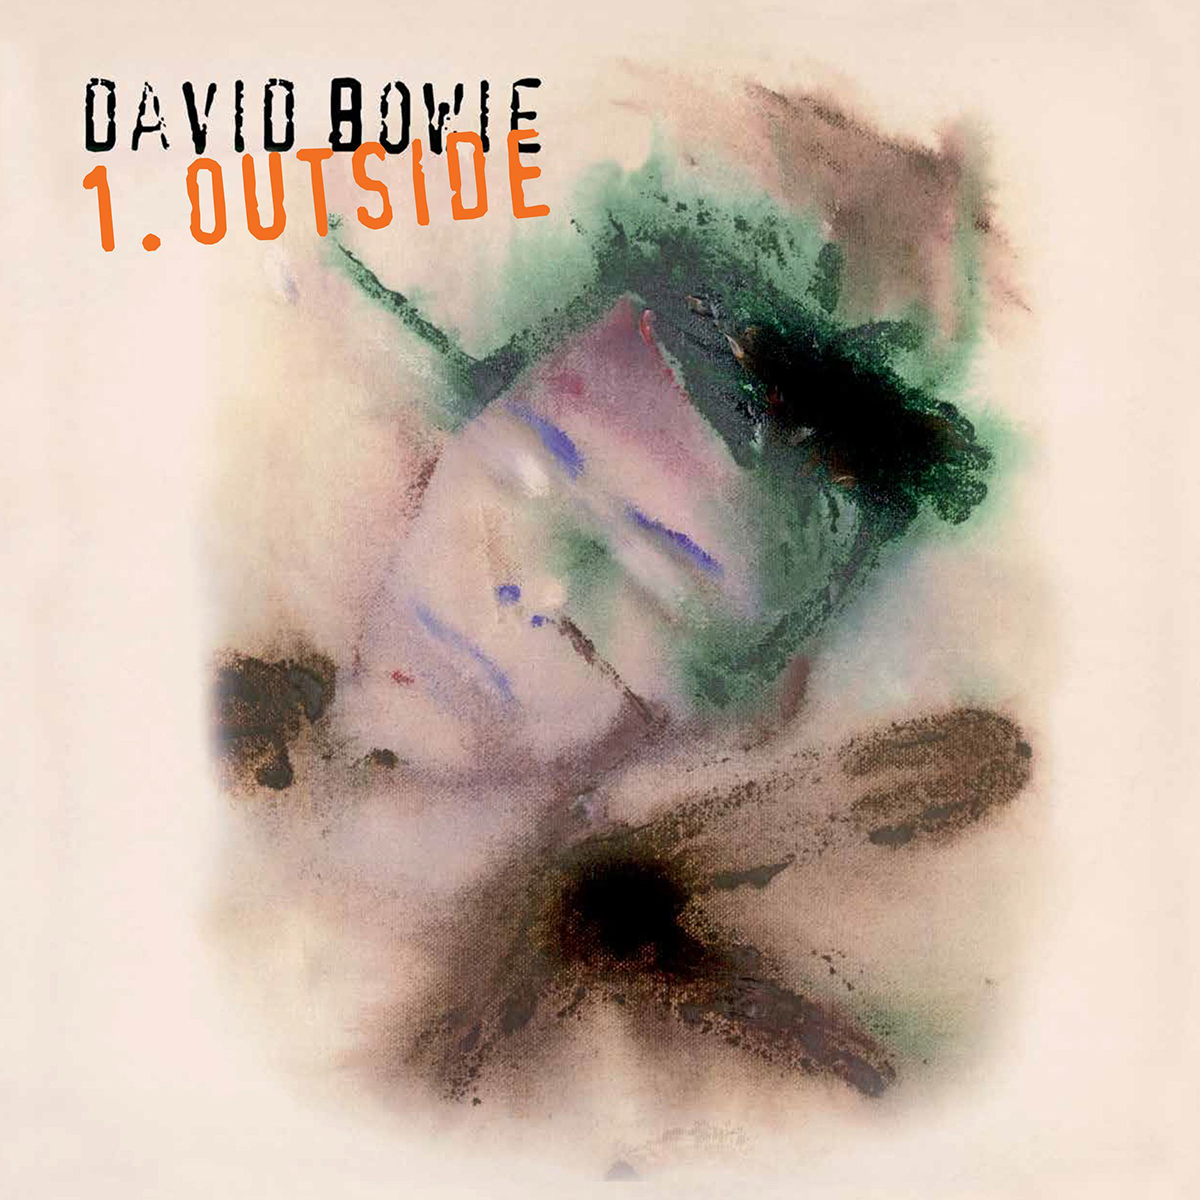 David Bowie - 1. OUTSIDE (180 GRAM AUDIOPHILE WHITE AND BLACK SWIRL VINYL/LIMITED EDITION) LP